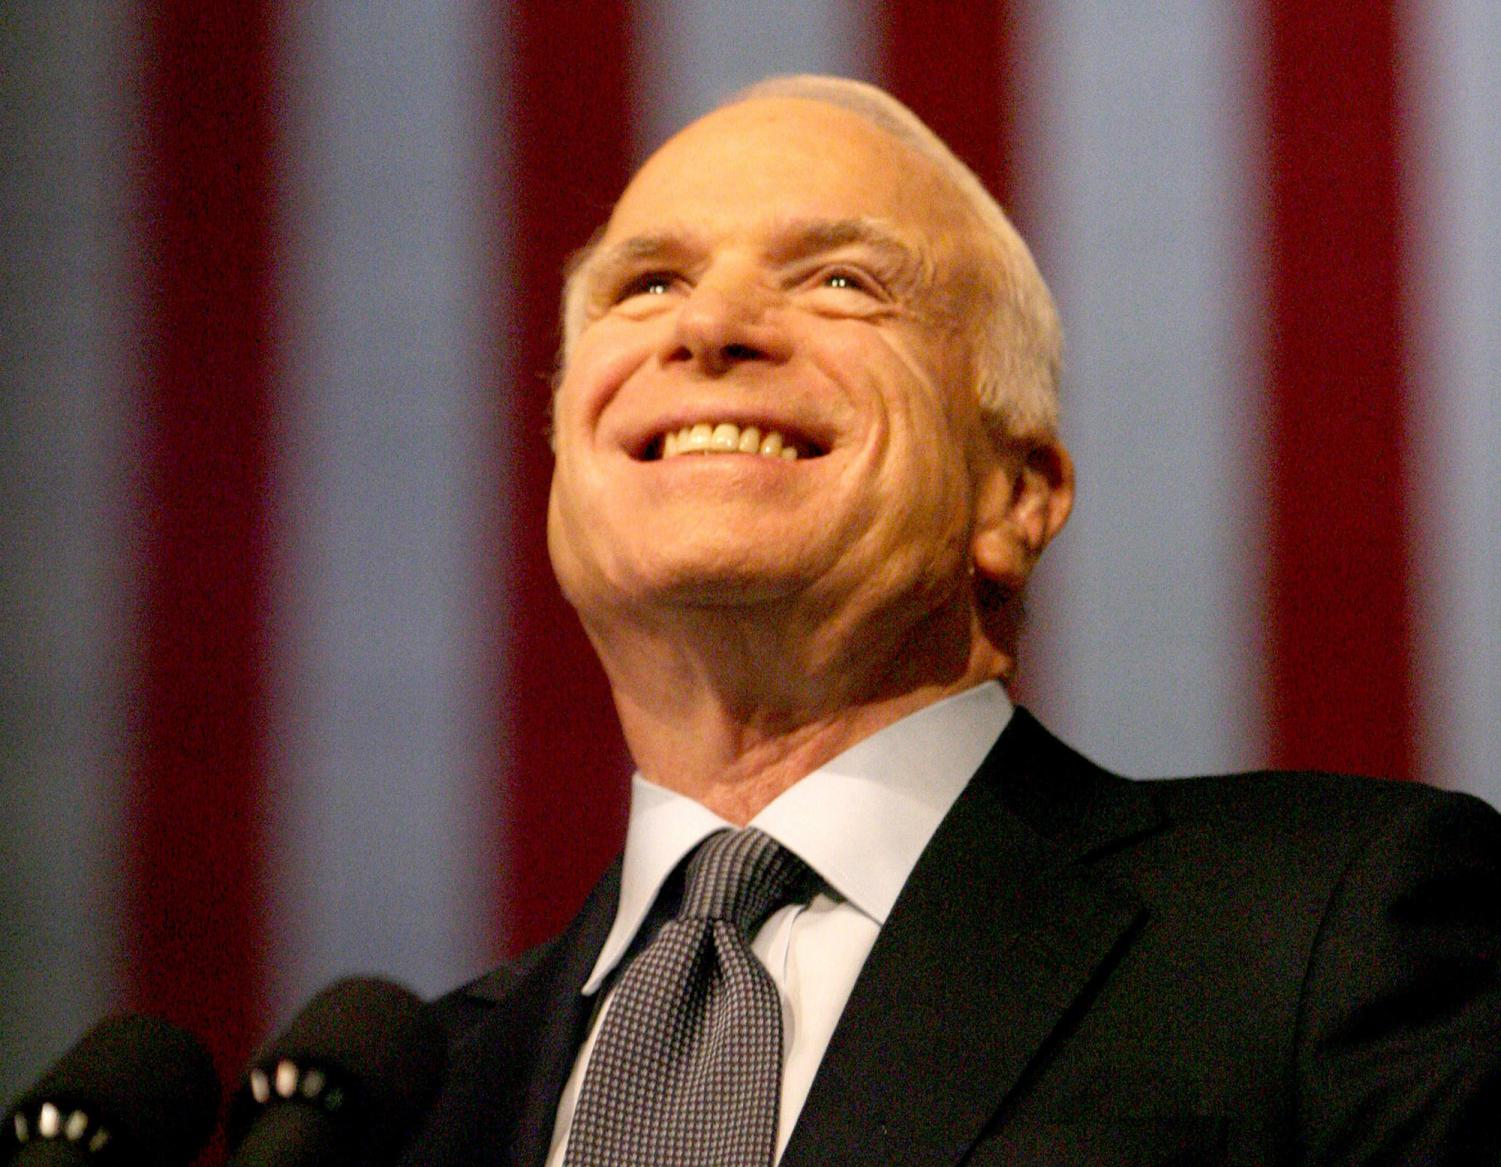 Opinion columnist Albie Nicol honors Senator John McCain, admiring his dignity, patriotism and willingness to cross party lines for what he believed in.